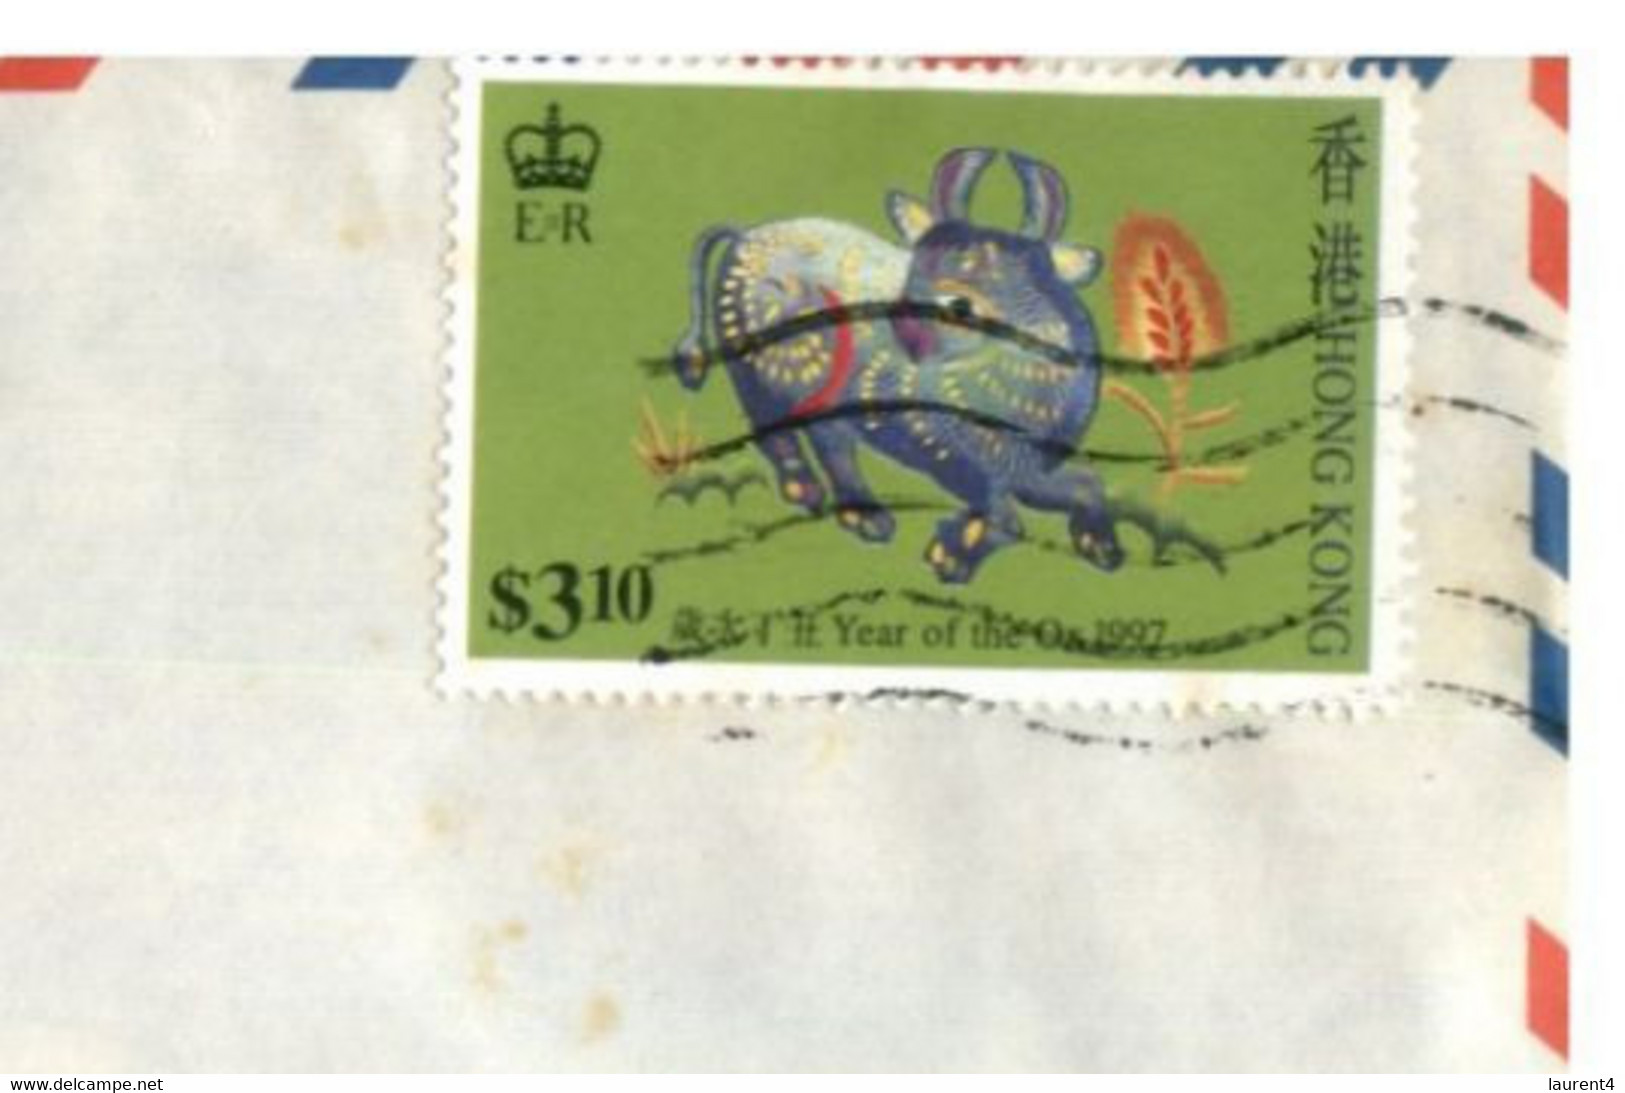 (II 26) Hong Kong - Cover Posted To Australia - 1997 & 1993 (2 Covers) Year Of The Ox Stamp - Cartas